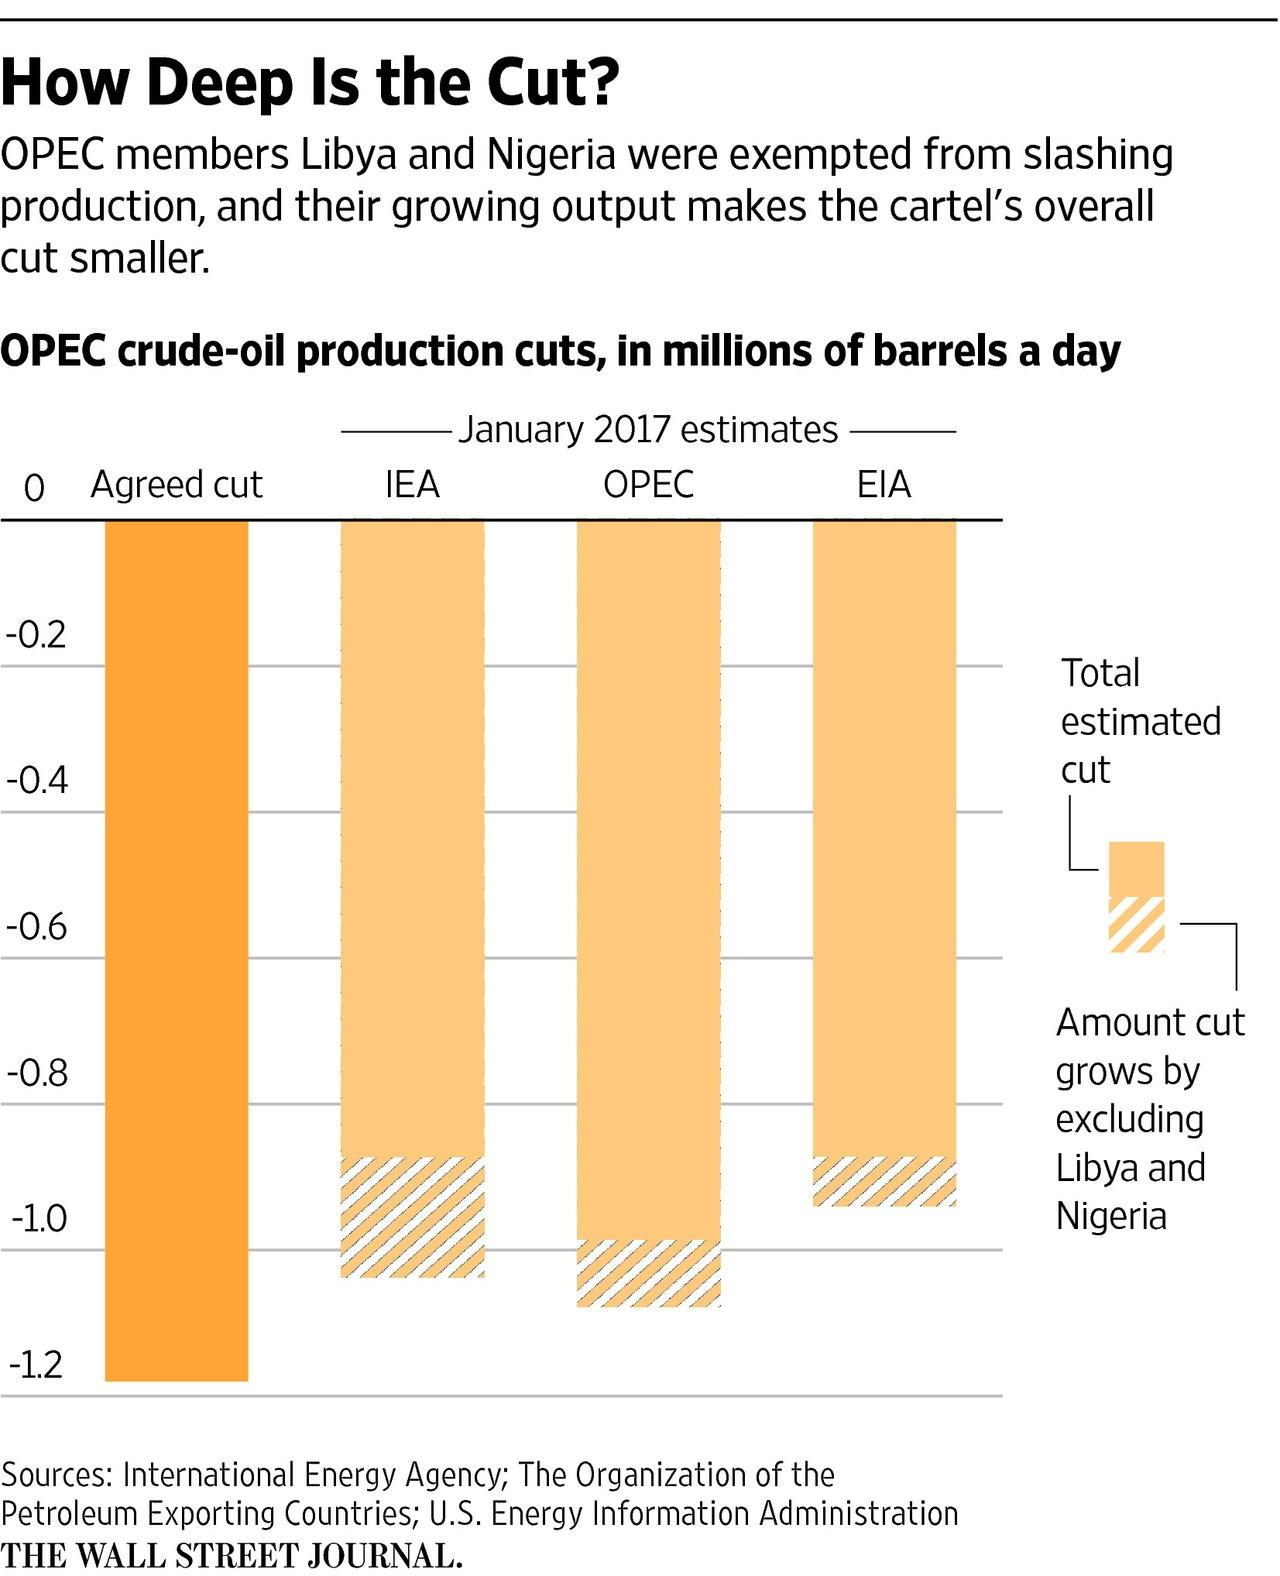 OPEC delivering on agreed oil output cuts, says Kuwait